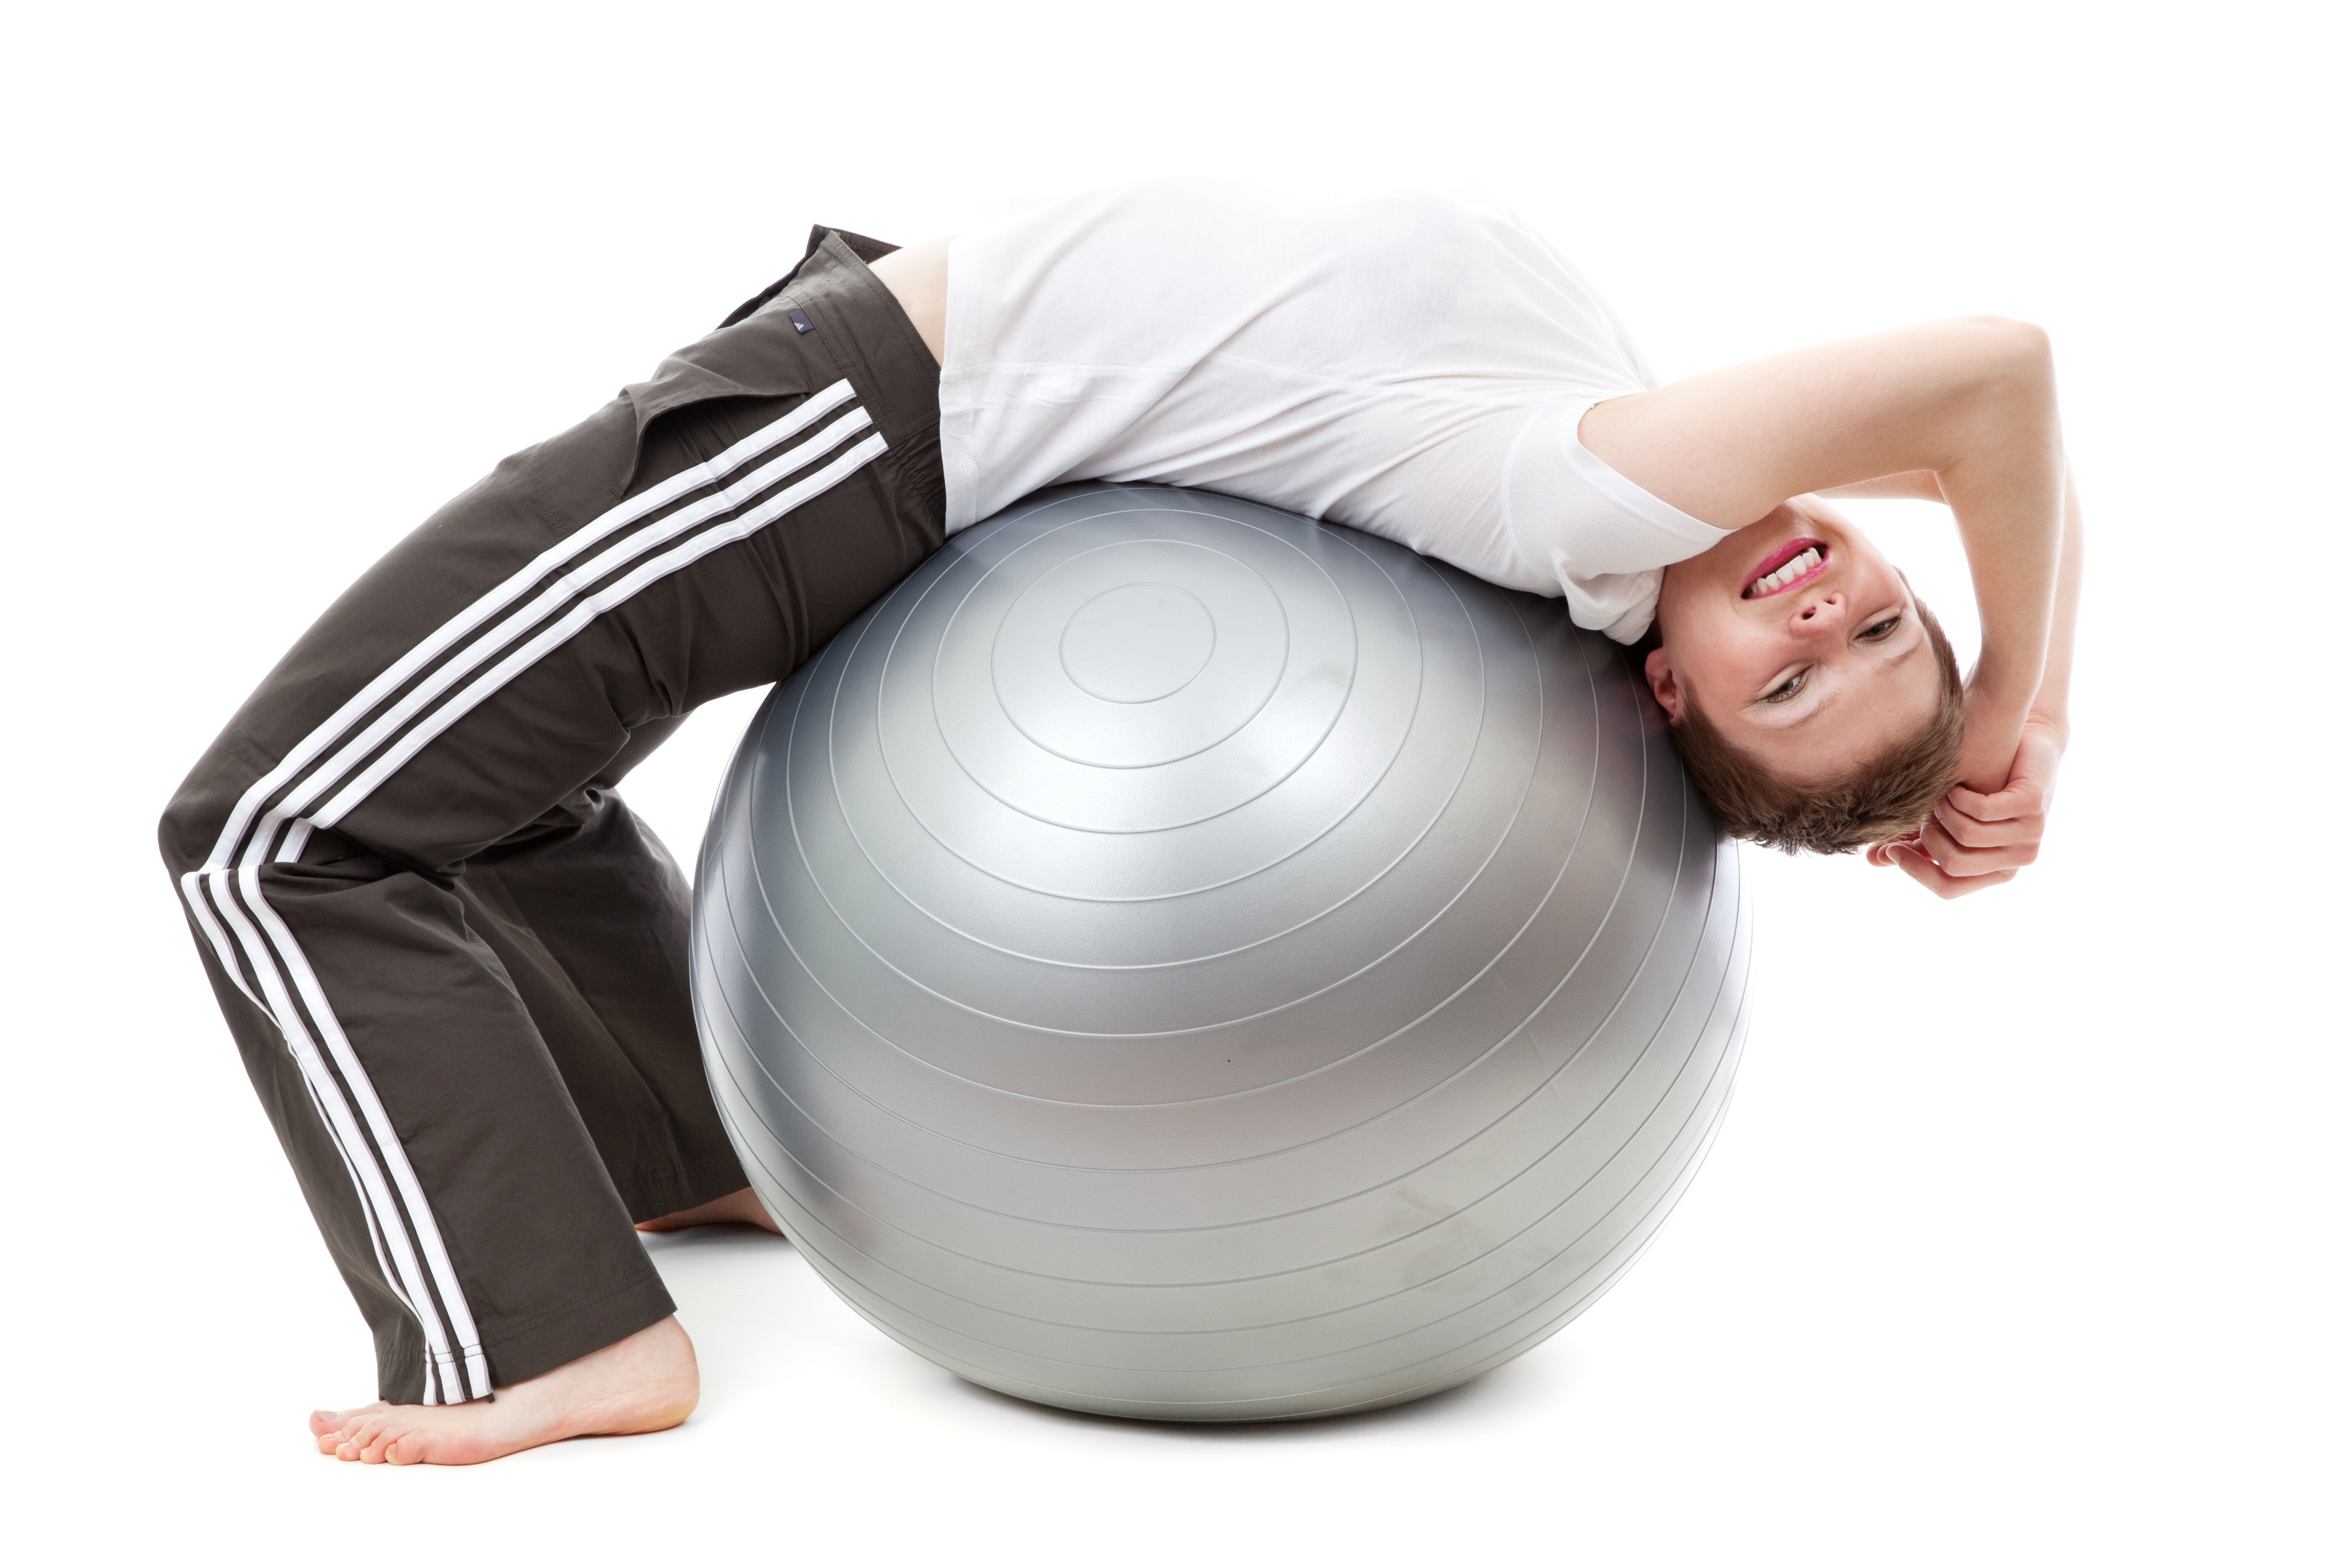 Woman in White Cap Shirt on Stability Ball, Exercise, Fitness, Healthy, Meditation, HQ Photo